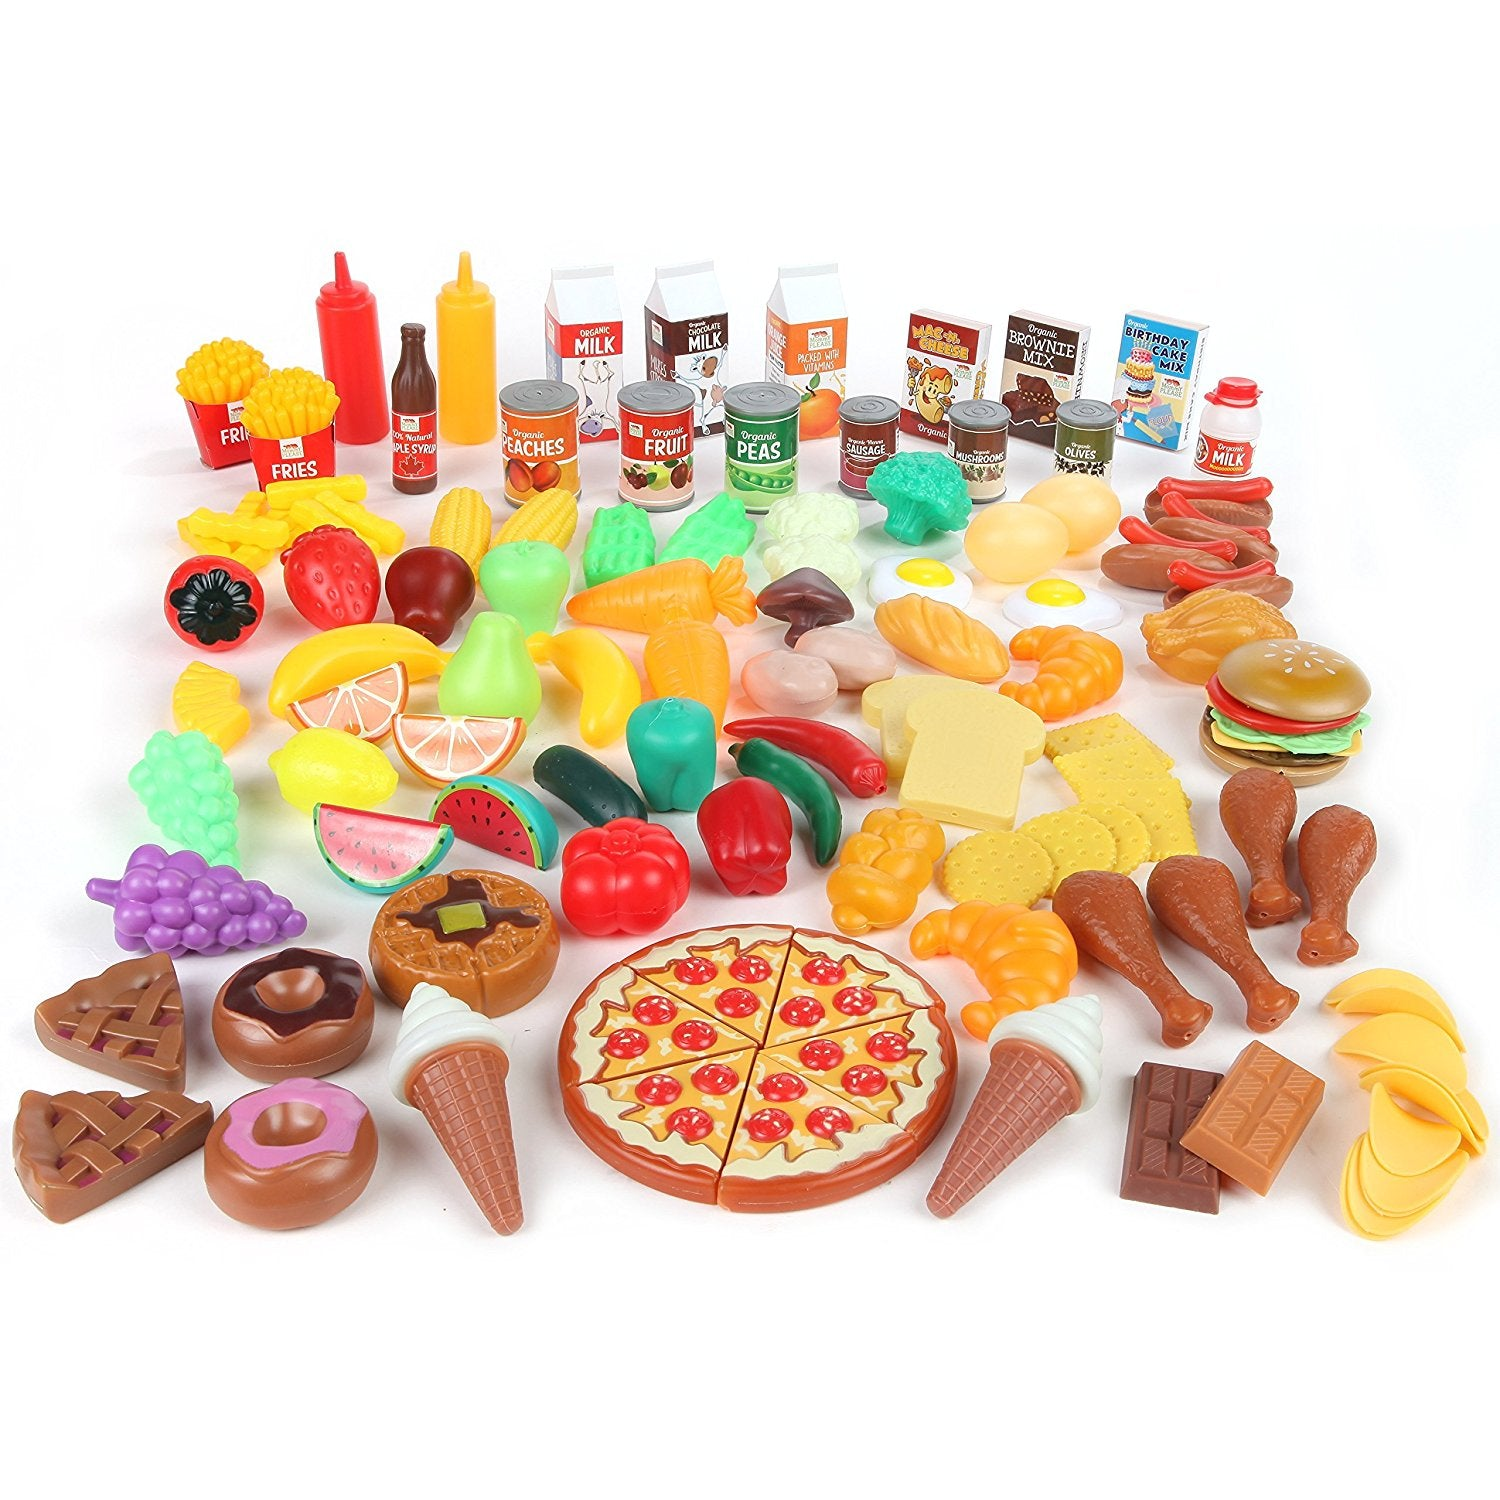 Mommy Please™ Play Food Set for Kids & Toy Food for Pretend Play